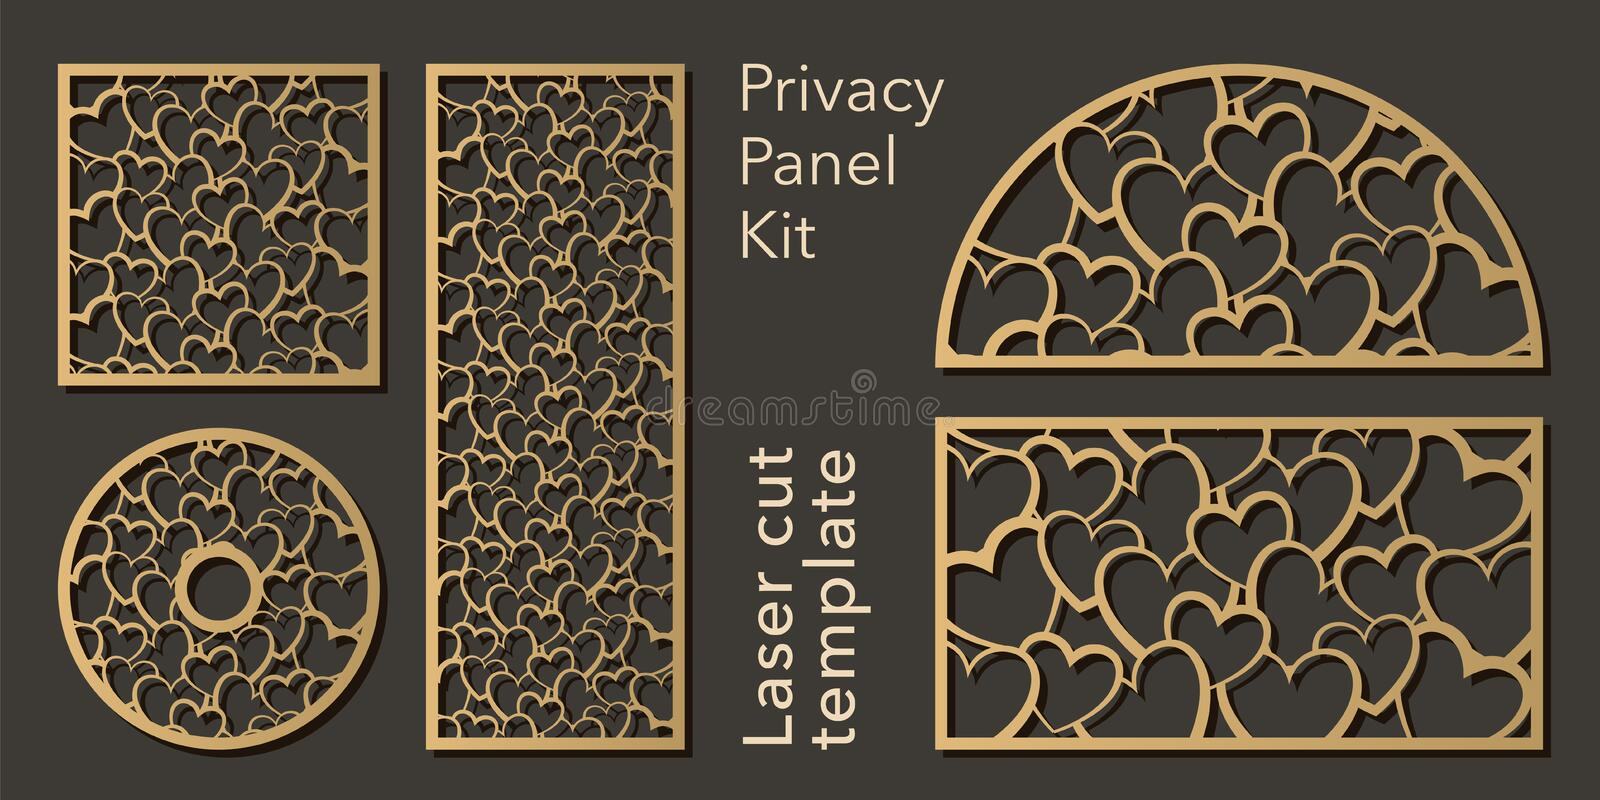 Set of openwork panels for laser cutting. Carved decorative element for interior design, room partition, screen, privacy. Panel vector illustration